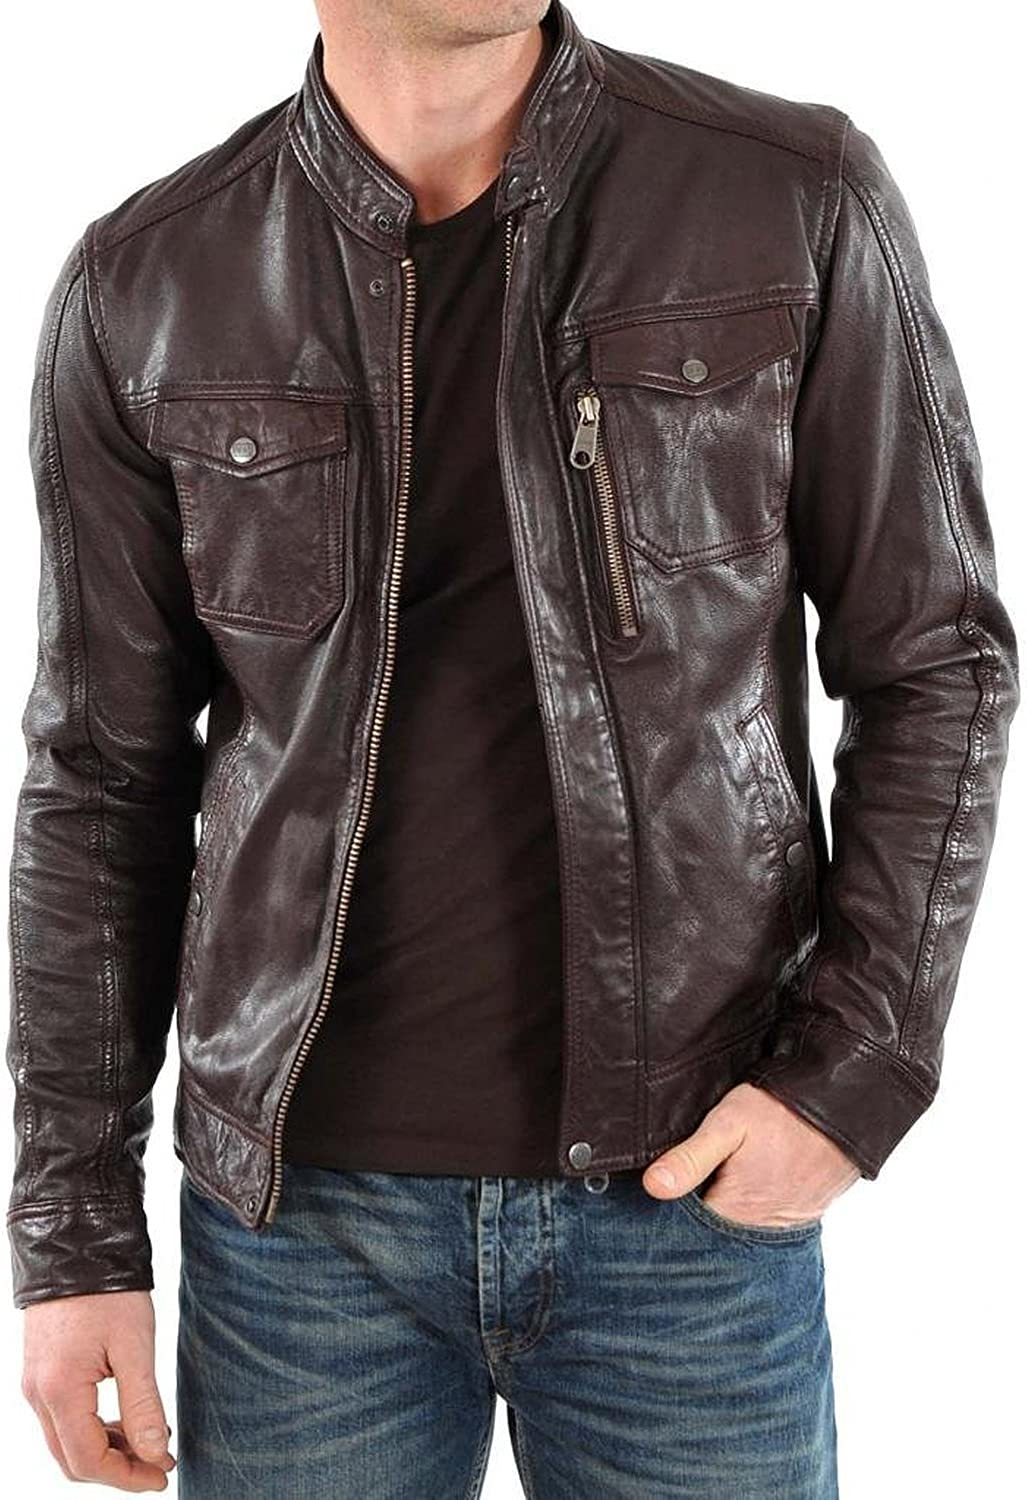 New Mens Genuine Lambskin Leather Slim Fit Biker Motorcycle Jacket for Men T459